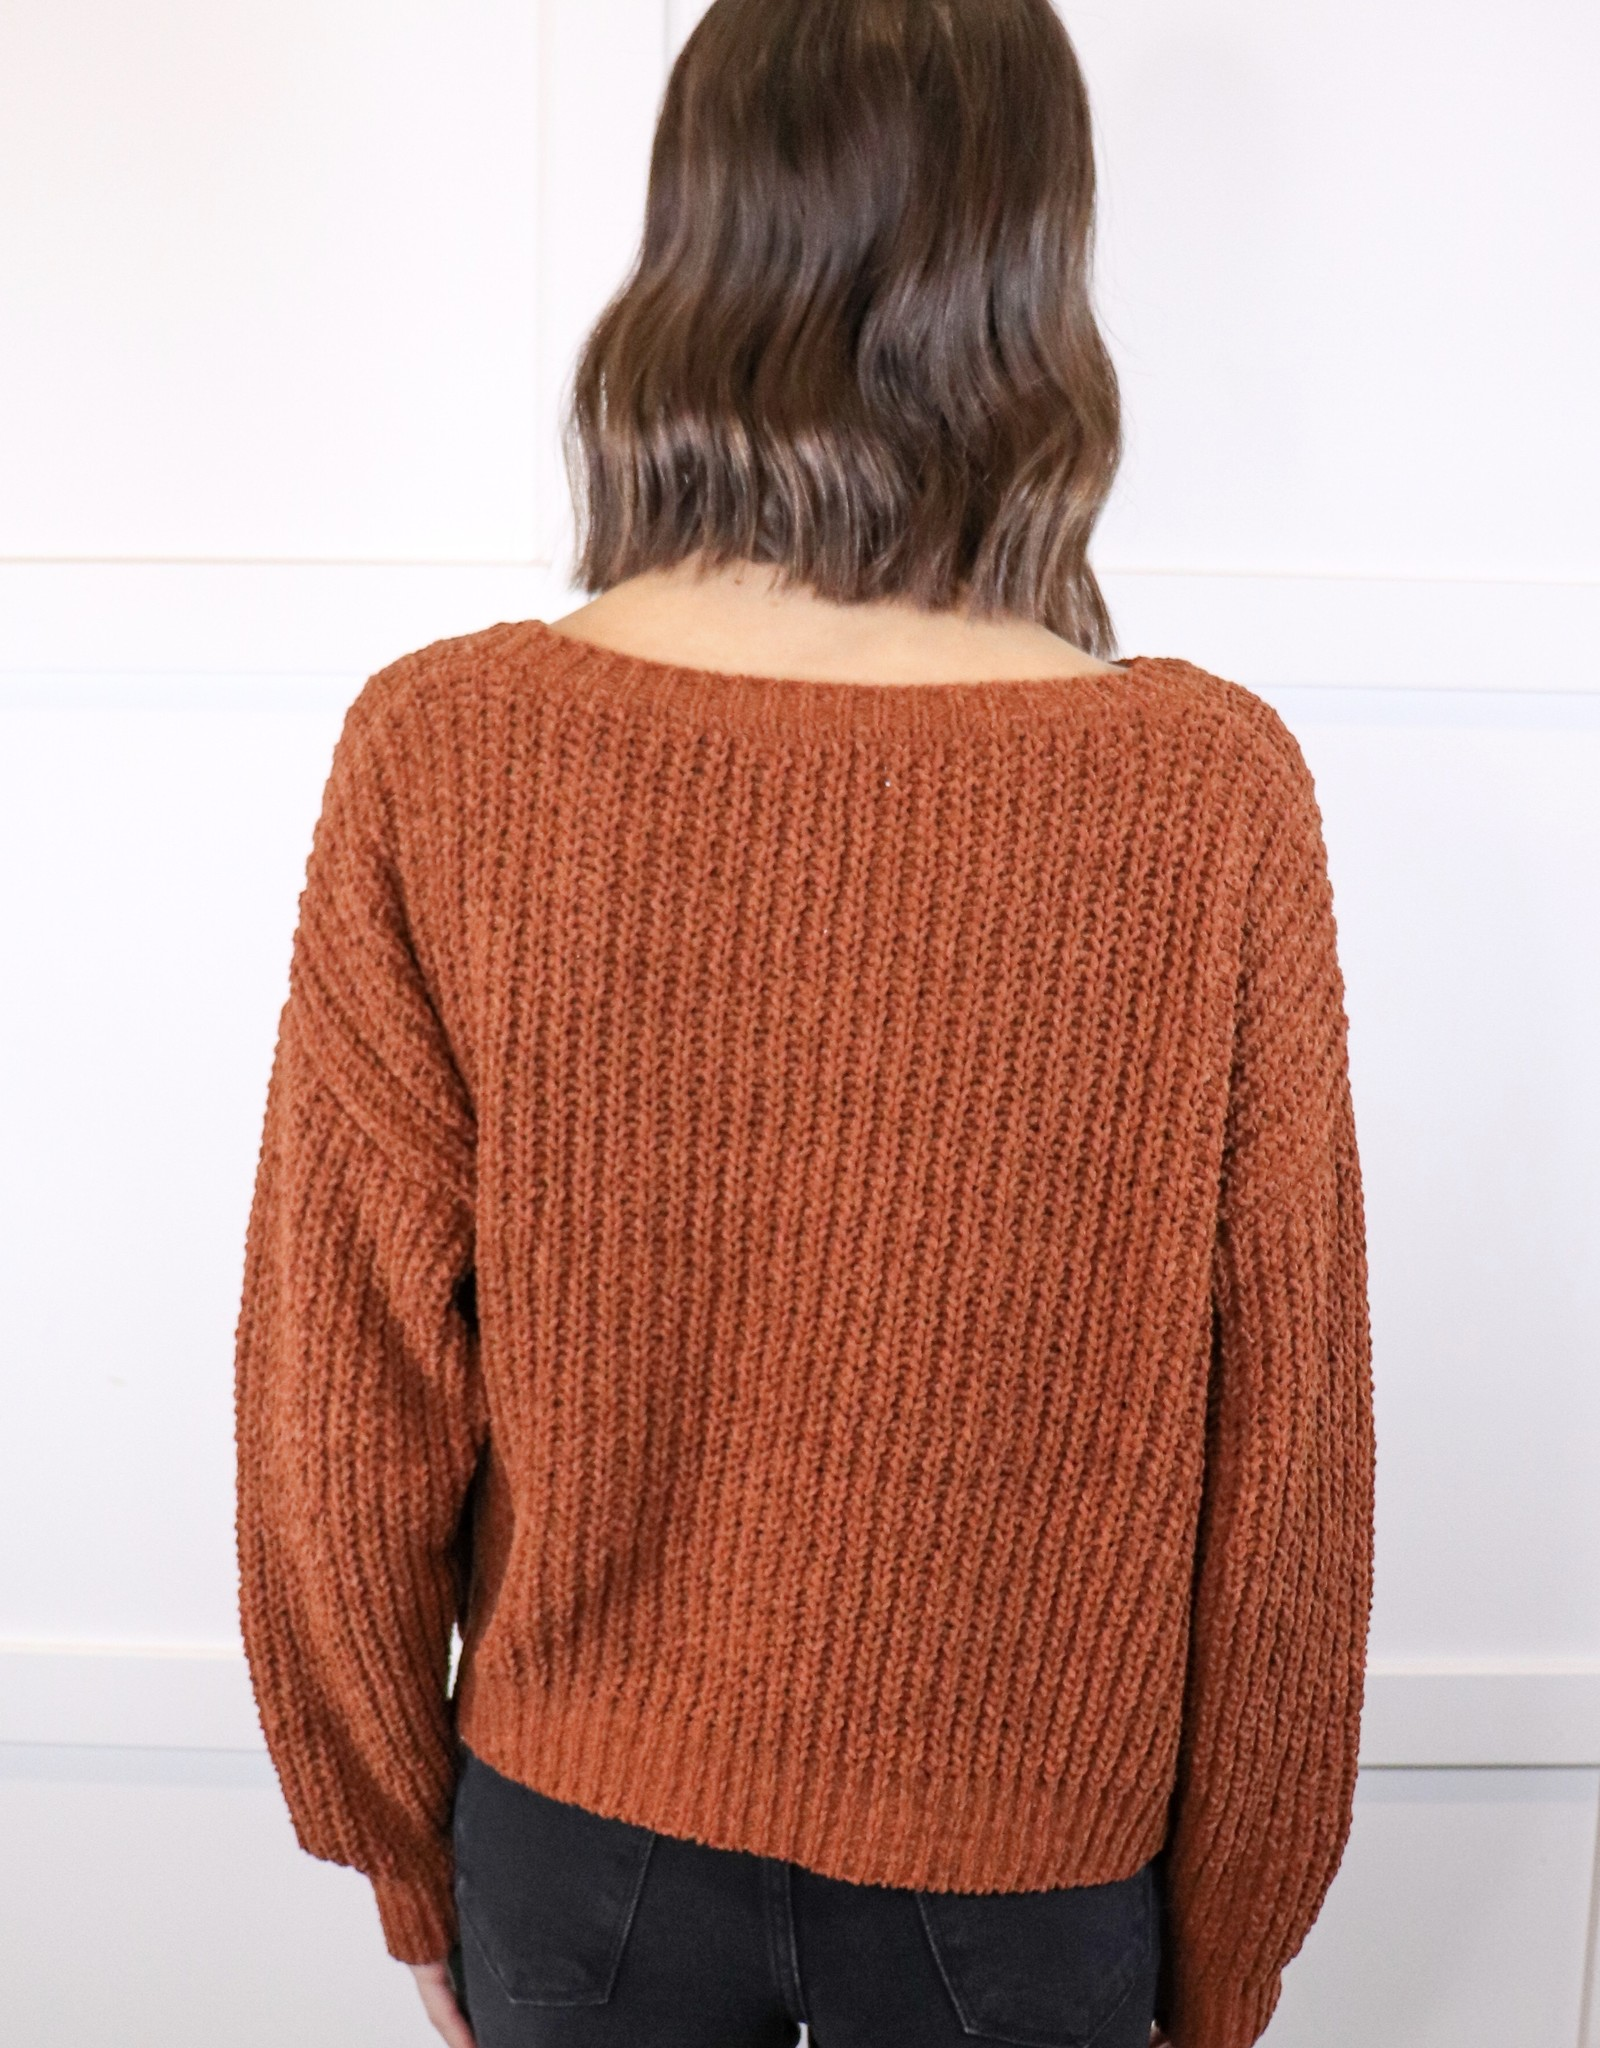 HUSH Soft chenille knit sweater